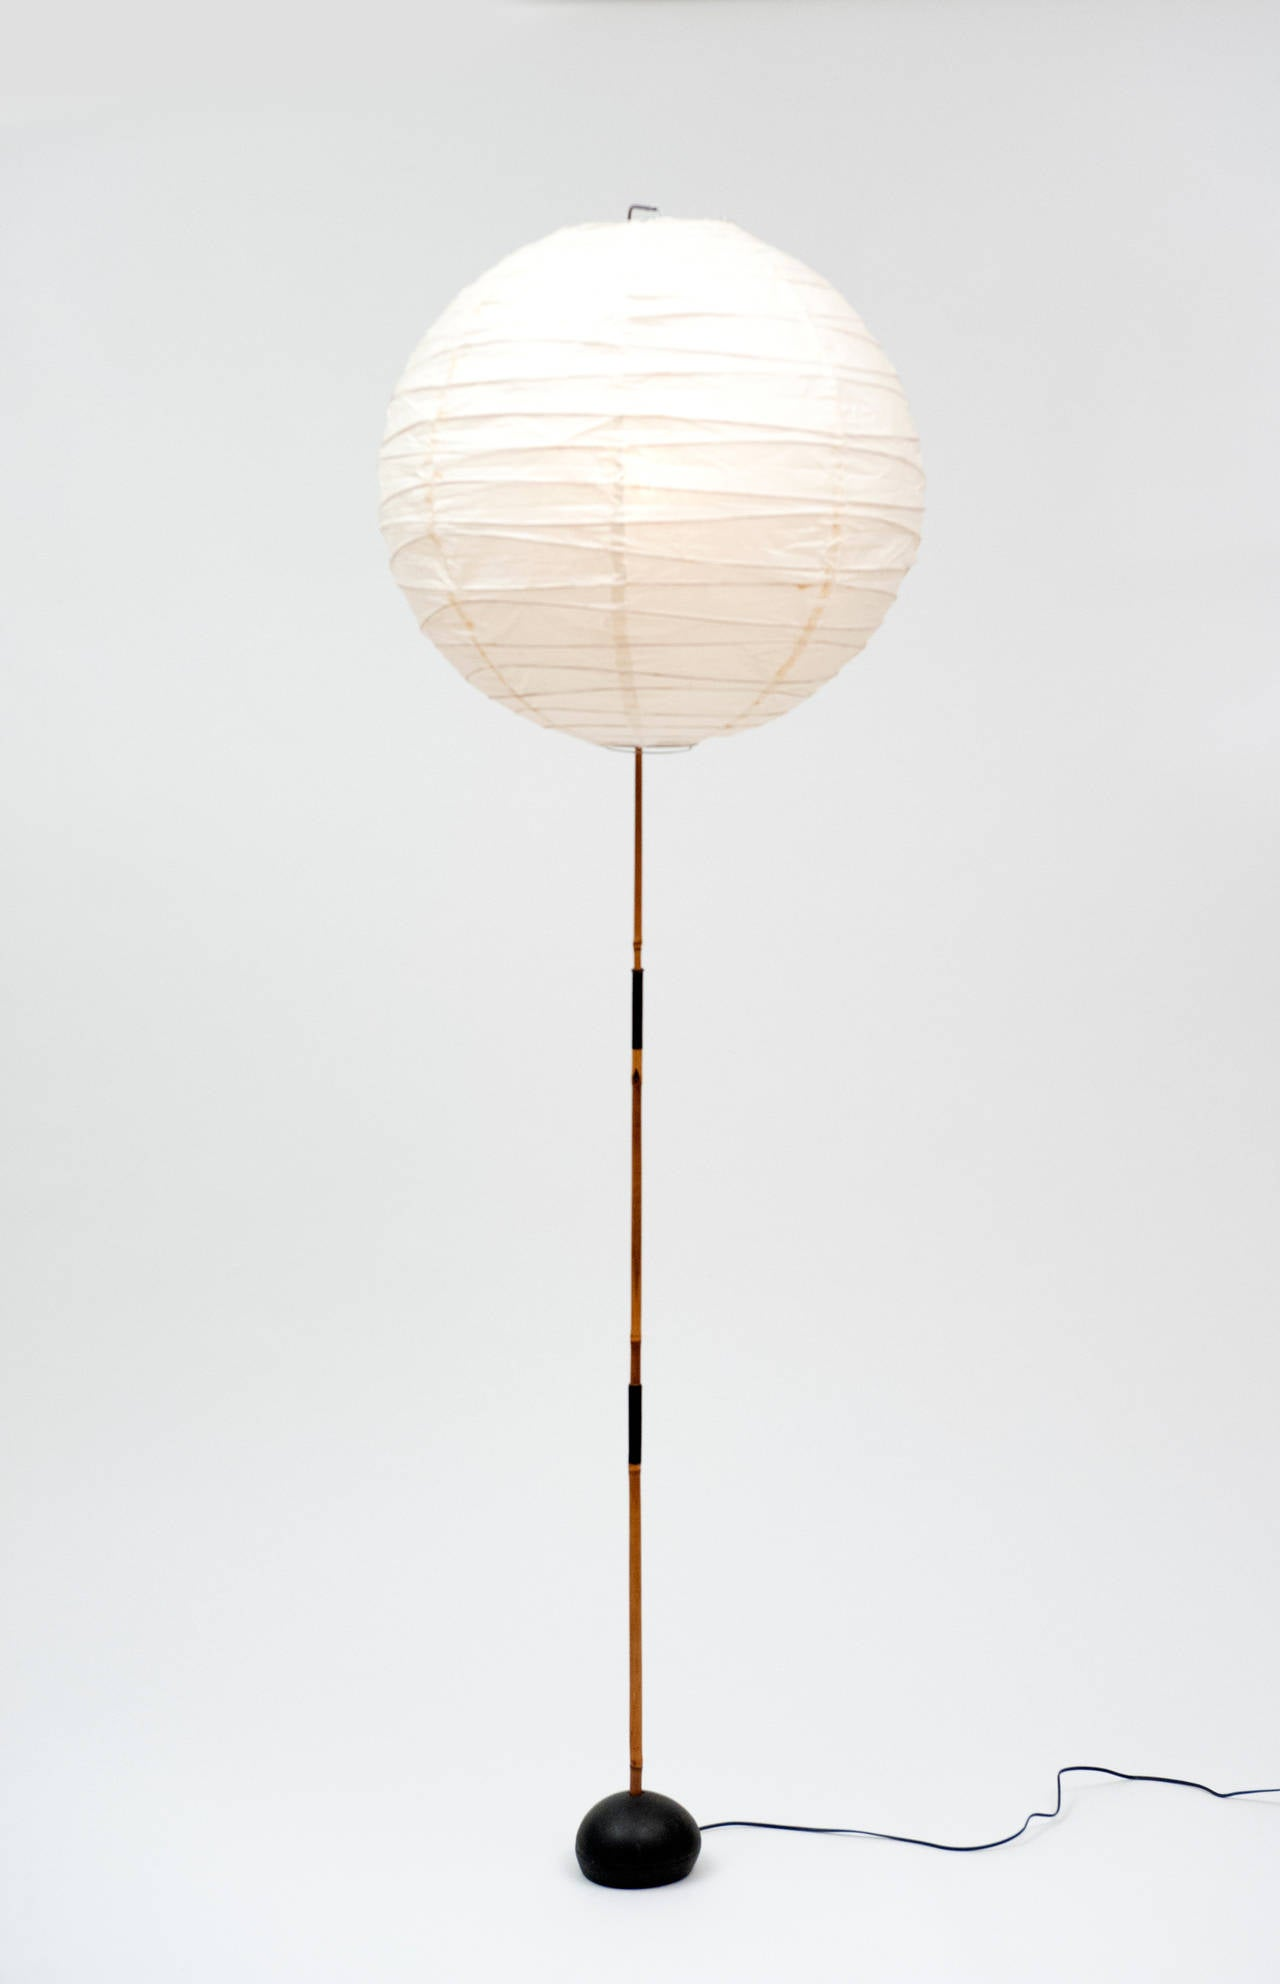 Isamu Noguchi Bamboo and Paper Lantern Floor Lamp 1950s at 1stdibs